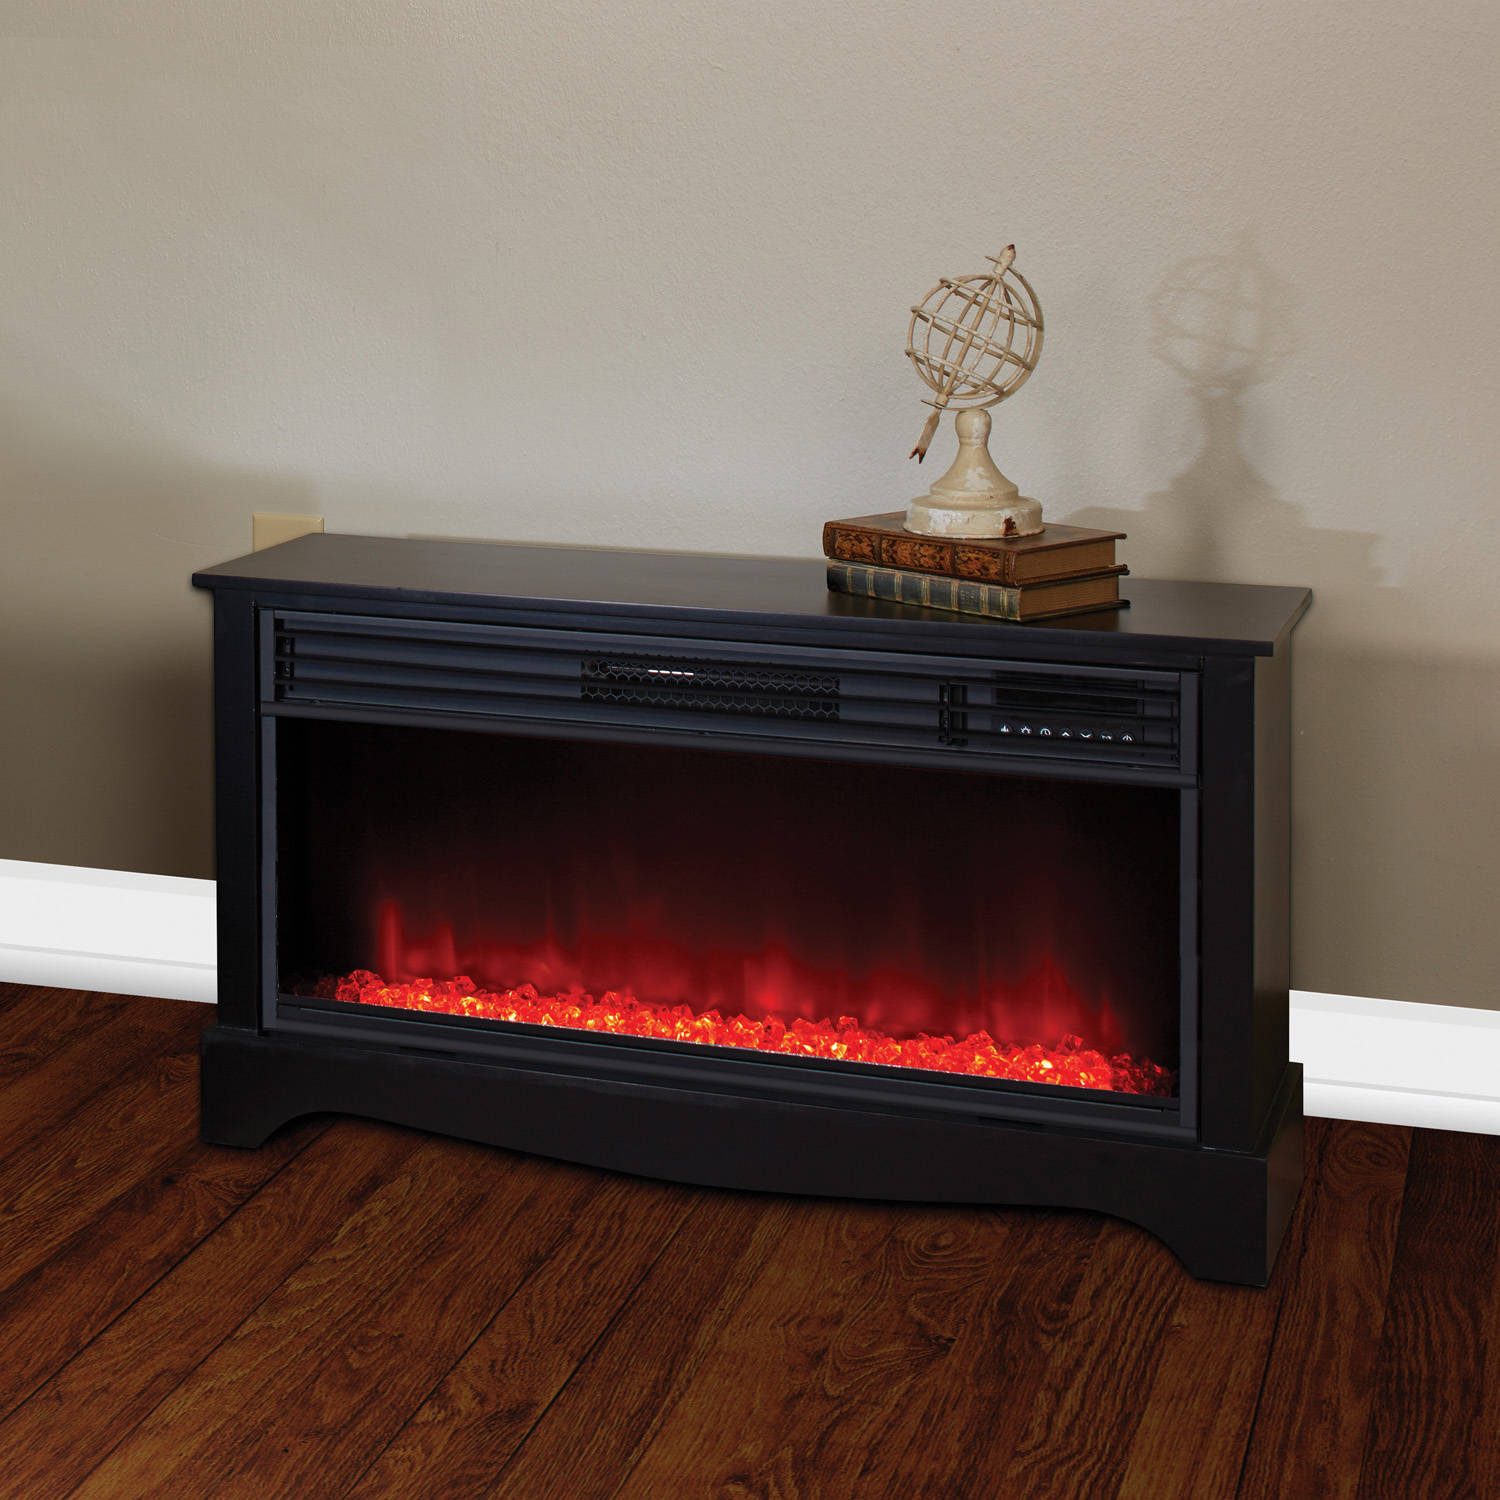 Lifesource 20 Tall Heater Fireplace with Color Change LED Affect